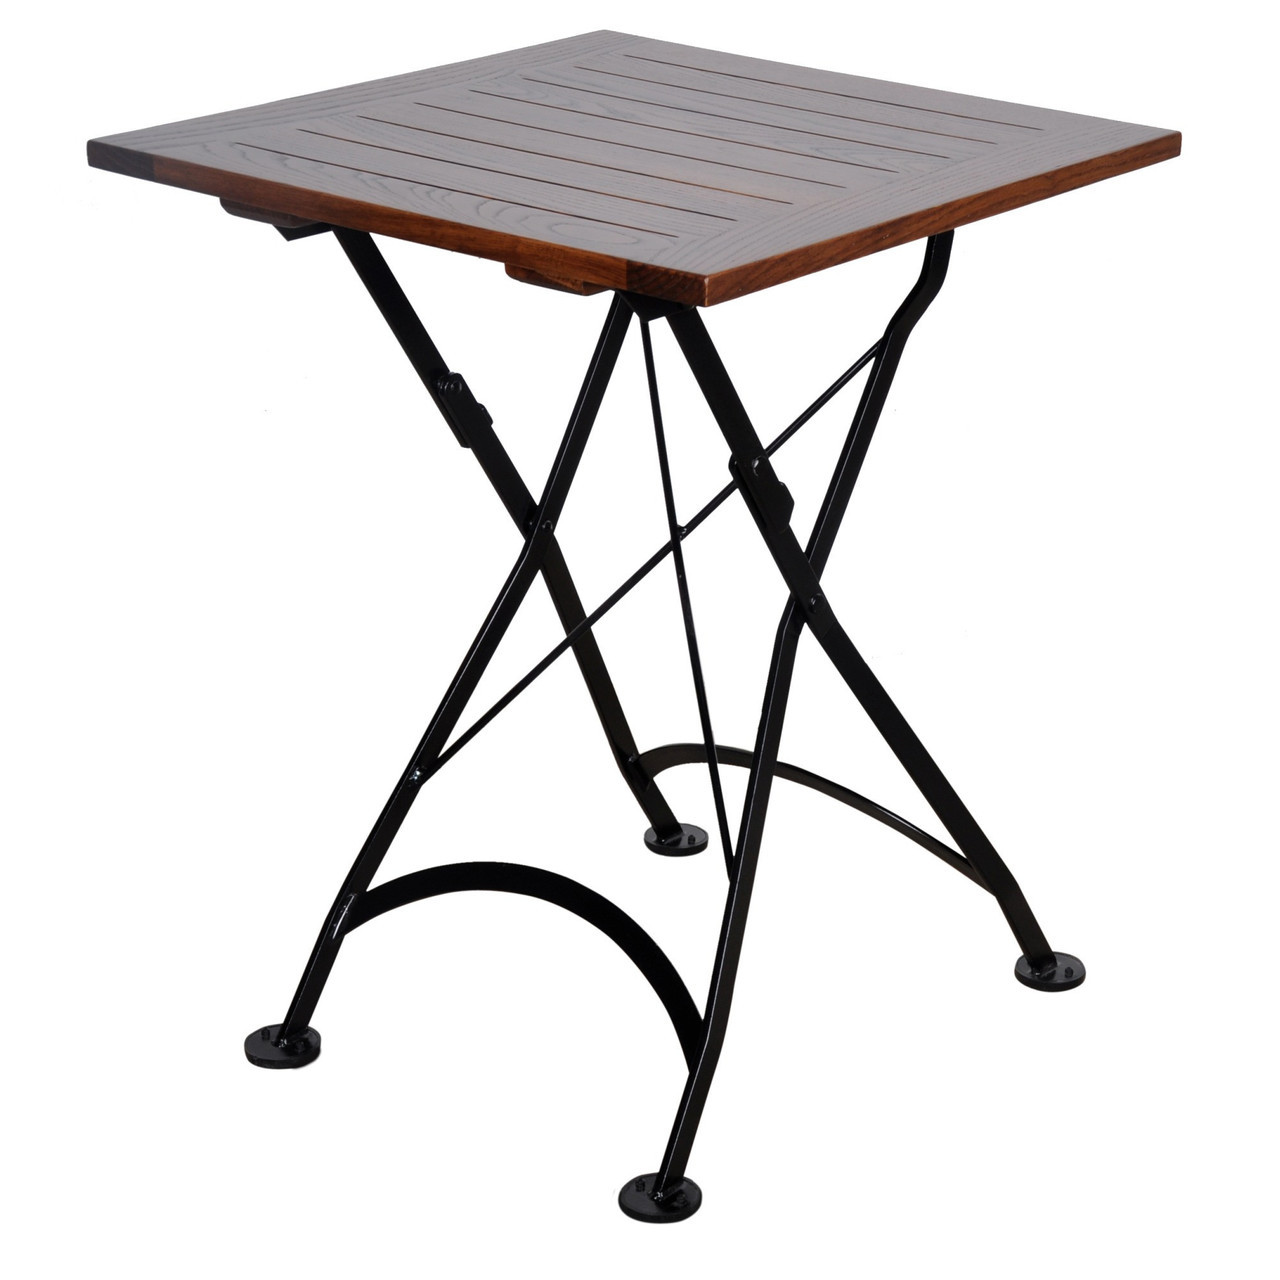 1280x1280 24 Inch Square European Folding Chestnut Wood Table